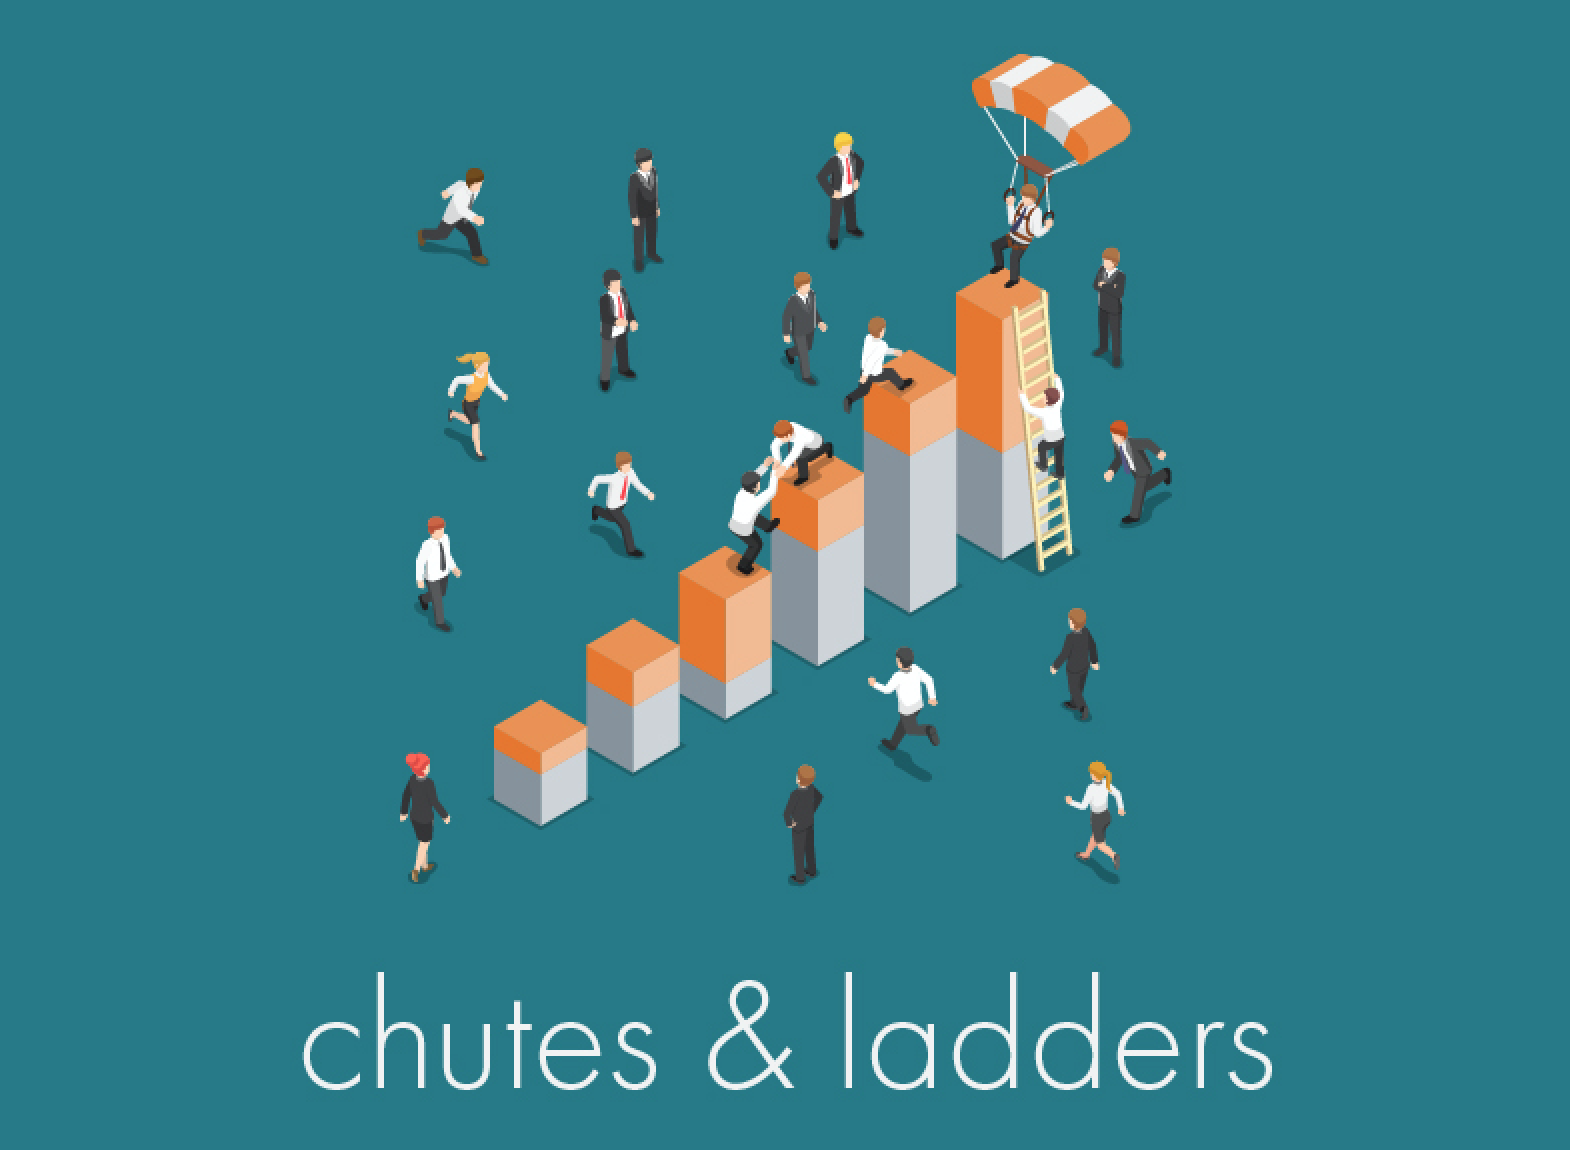 Chutes & Ladders – Adventist Health CEO Announces Departure;  Zocdoc Appoints Morgan Stanley Veterinarian as Chief Financial Officer